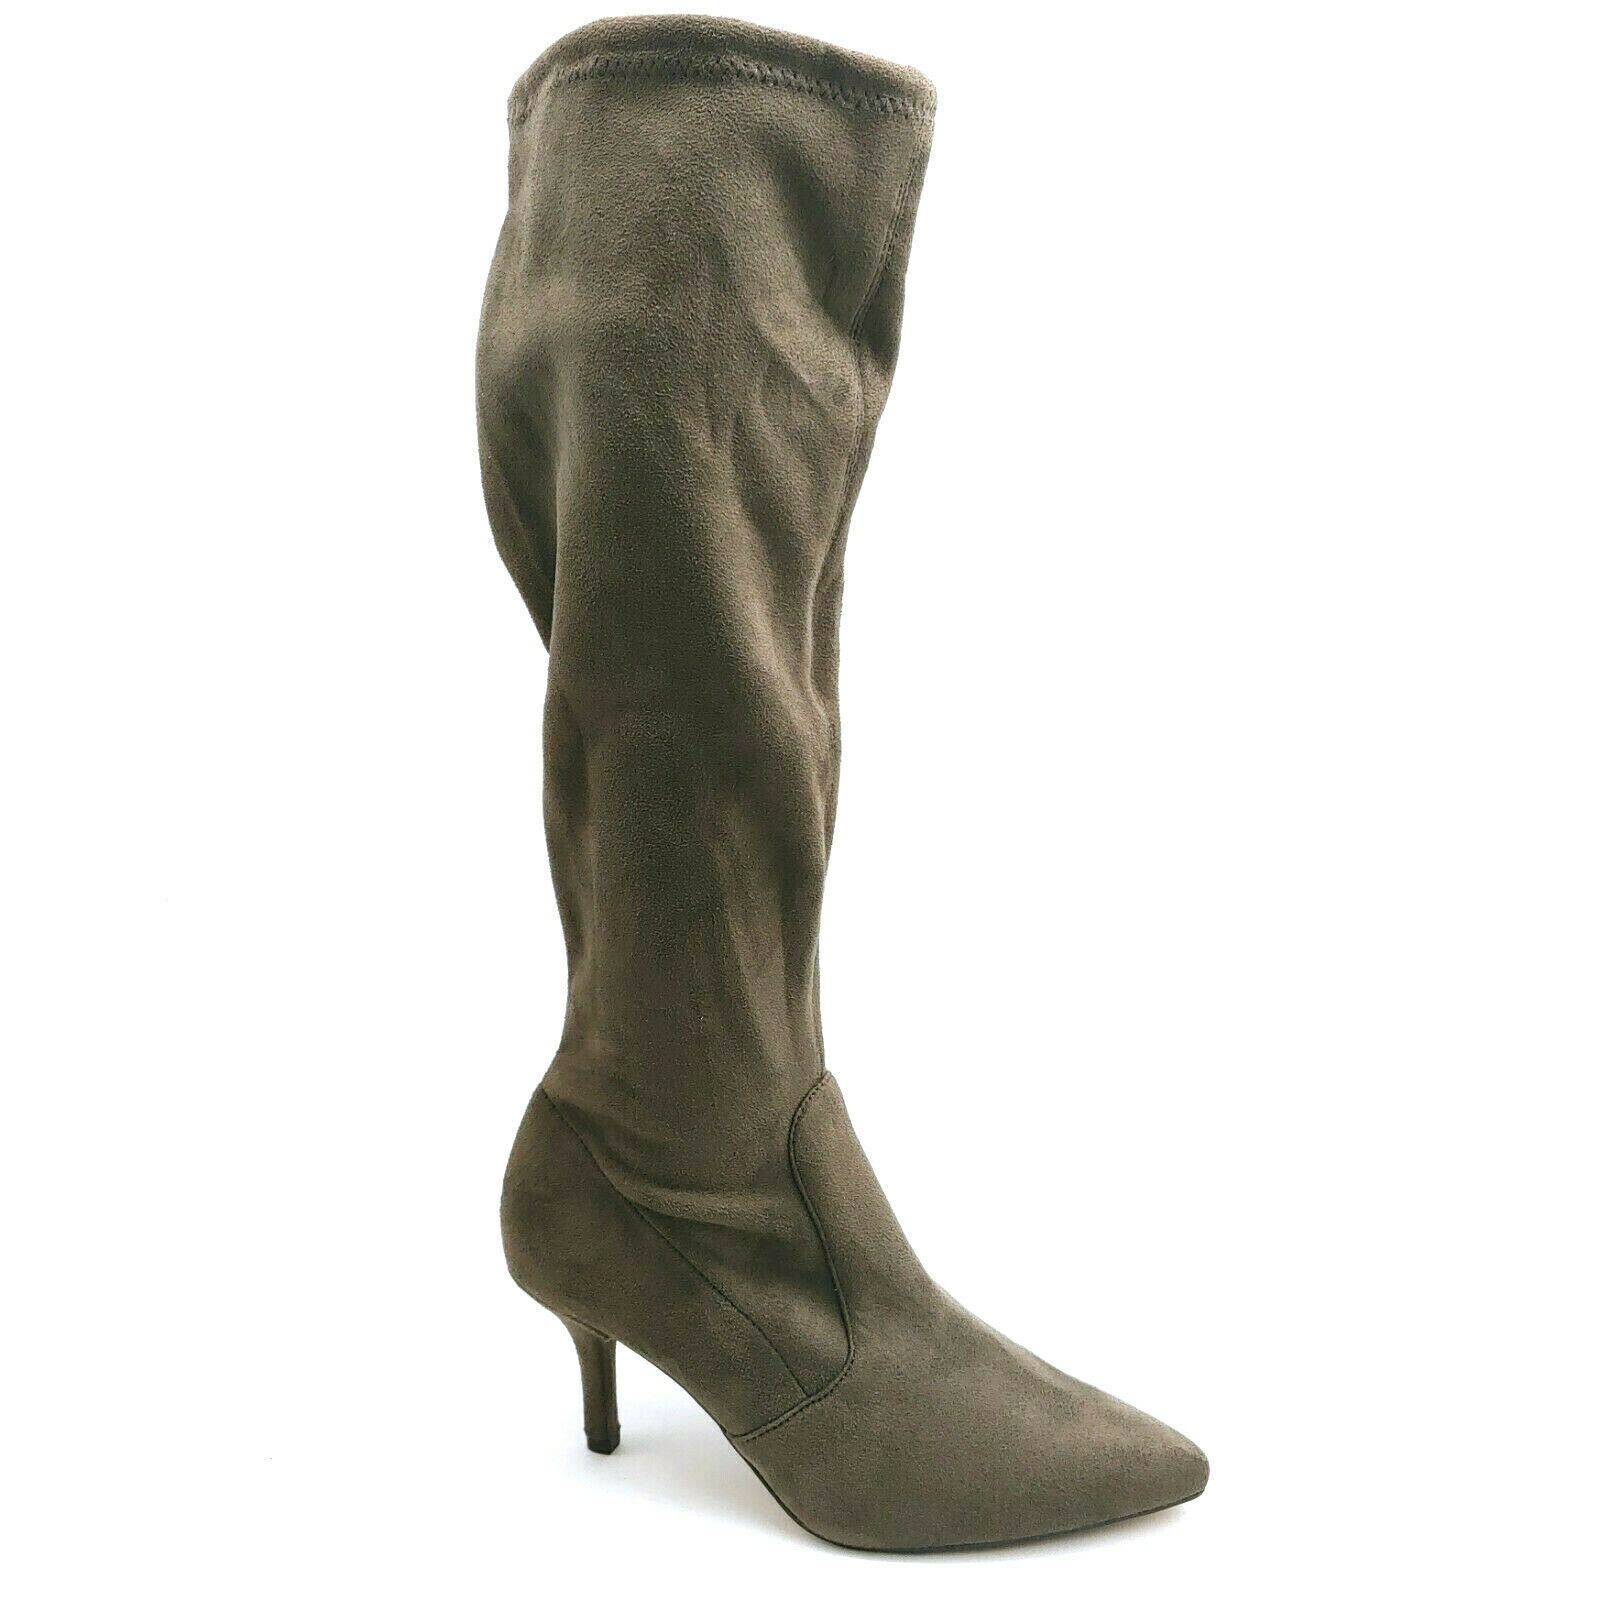 Primary image for Vince Camuto Womans Ashlina High Heel Knee High Boot Brown Side Zip Sz 7.5 M NEW